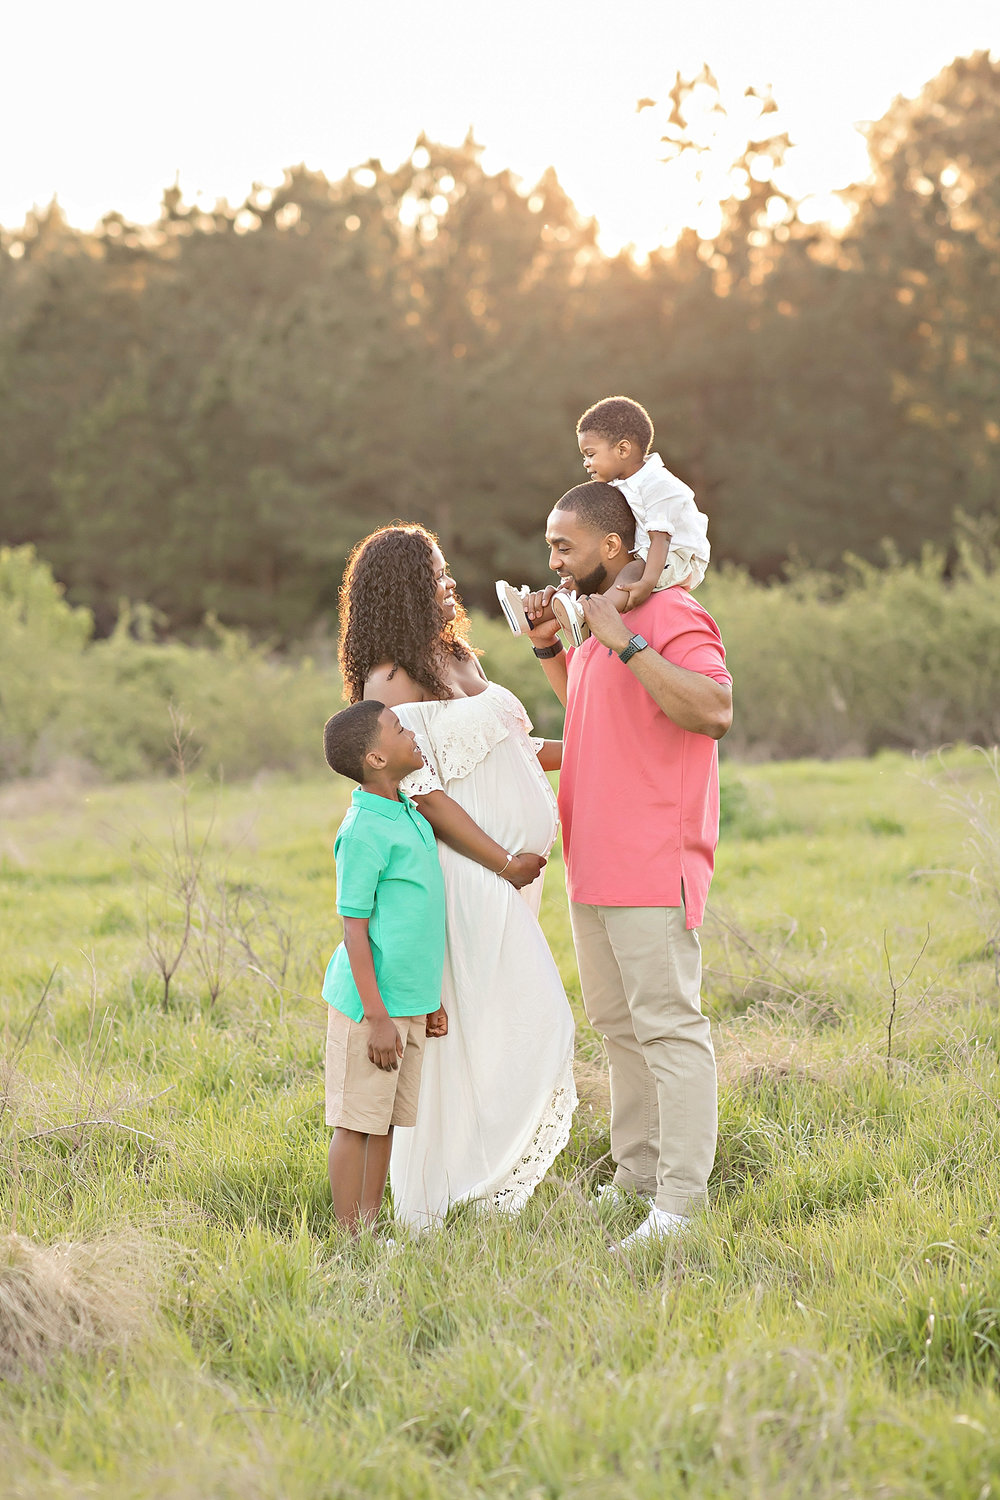 Image of a pregnant African American couple, with their two boys, standing in a field, smiling at each at sunset.